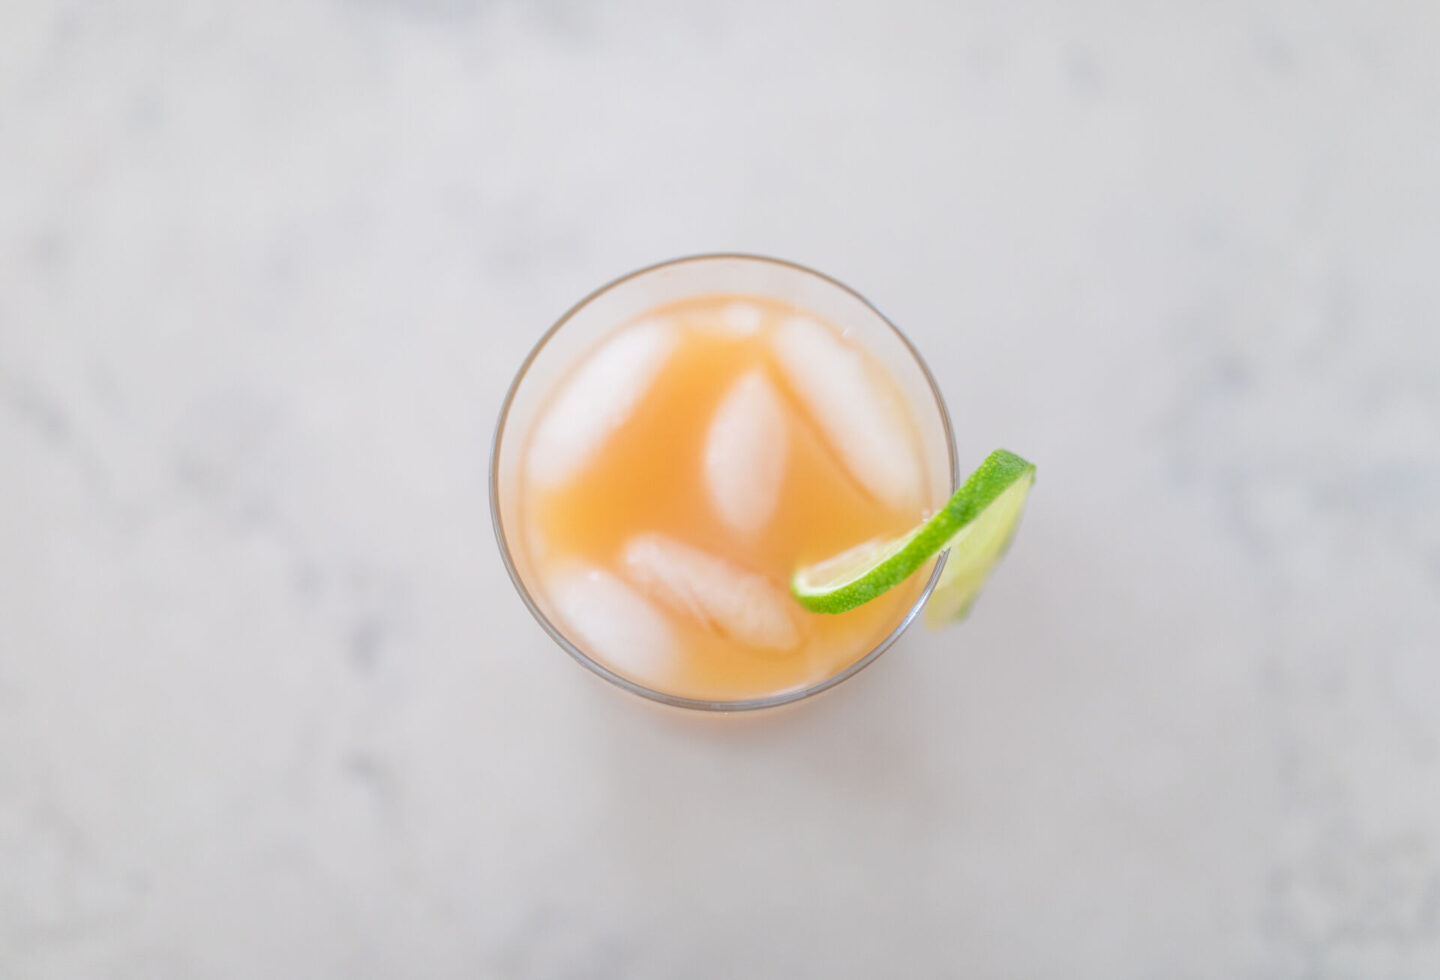 Coconut Rum Punch Recipe featured by top Atlanta lifestyle blogger, Moderately High Maintenance | Coconut Rum Punch by popular Atlanta lifestyle blog, Moderately High Maintenance: image of coconut rum punch in a clear glass with a lime wedge garnish.